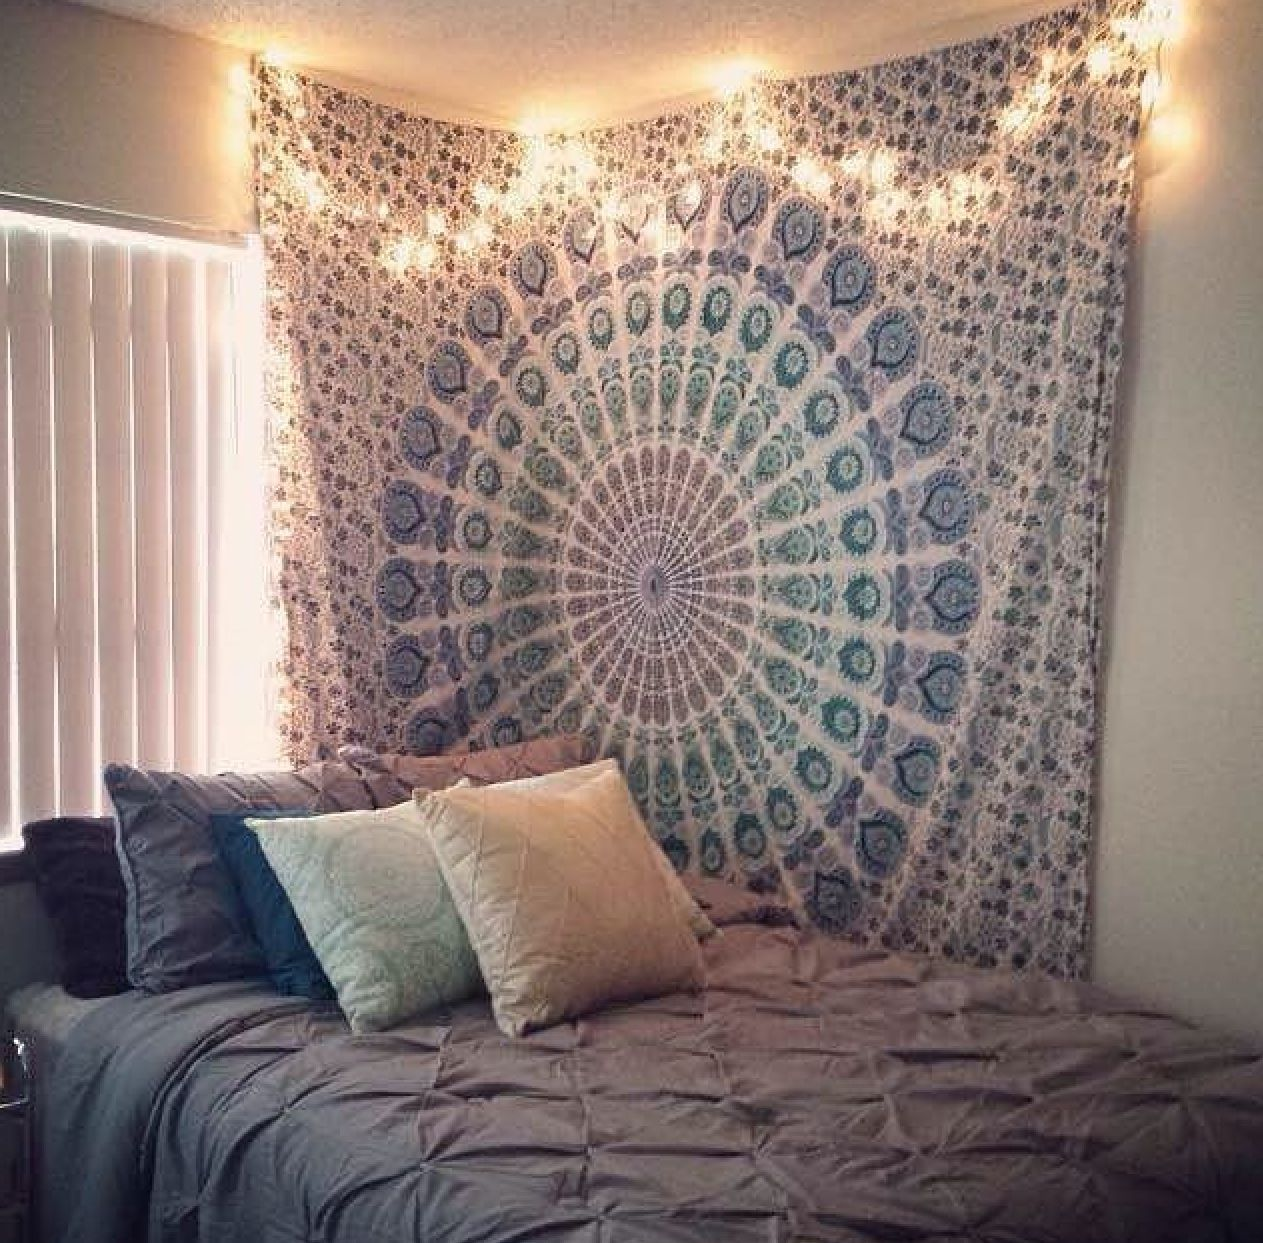 Bedroom Room Tapestry Tapestry Bedroom Dorm Room Tapestry